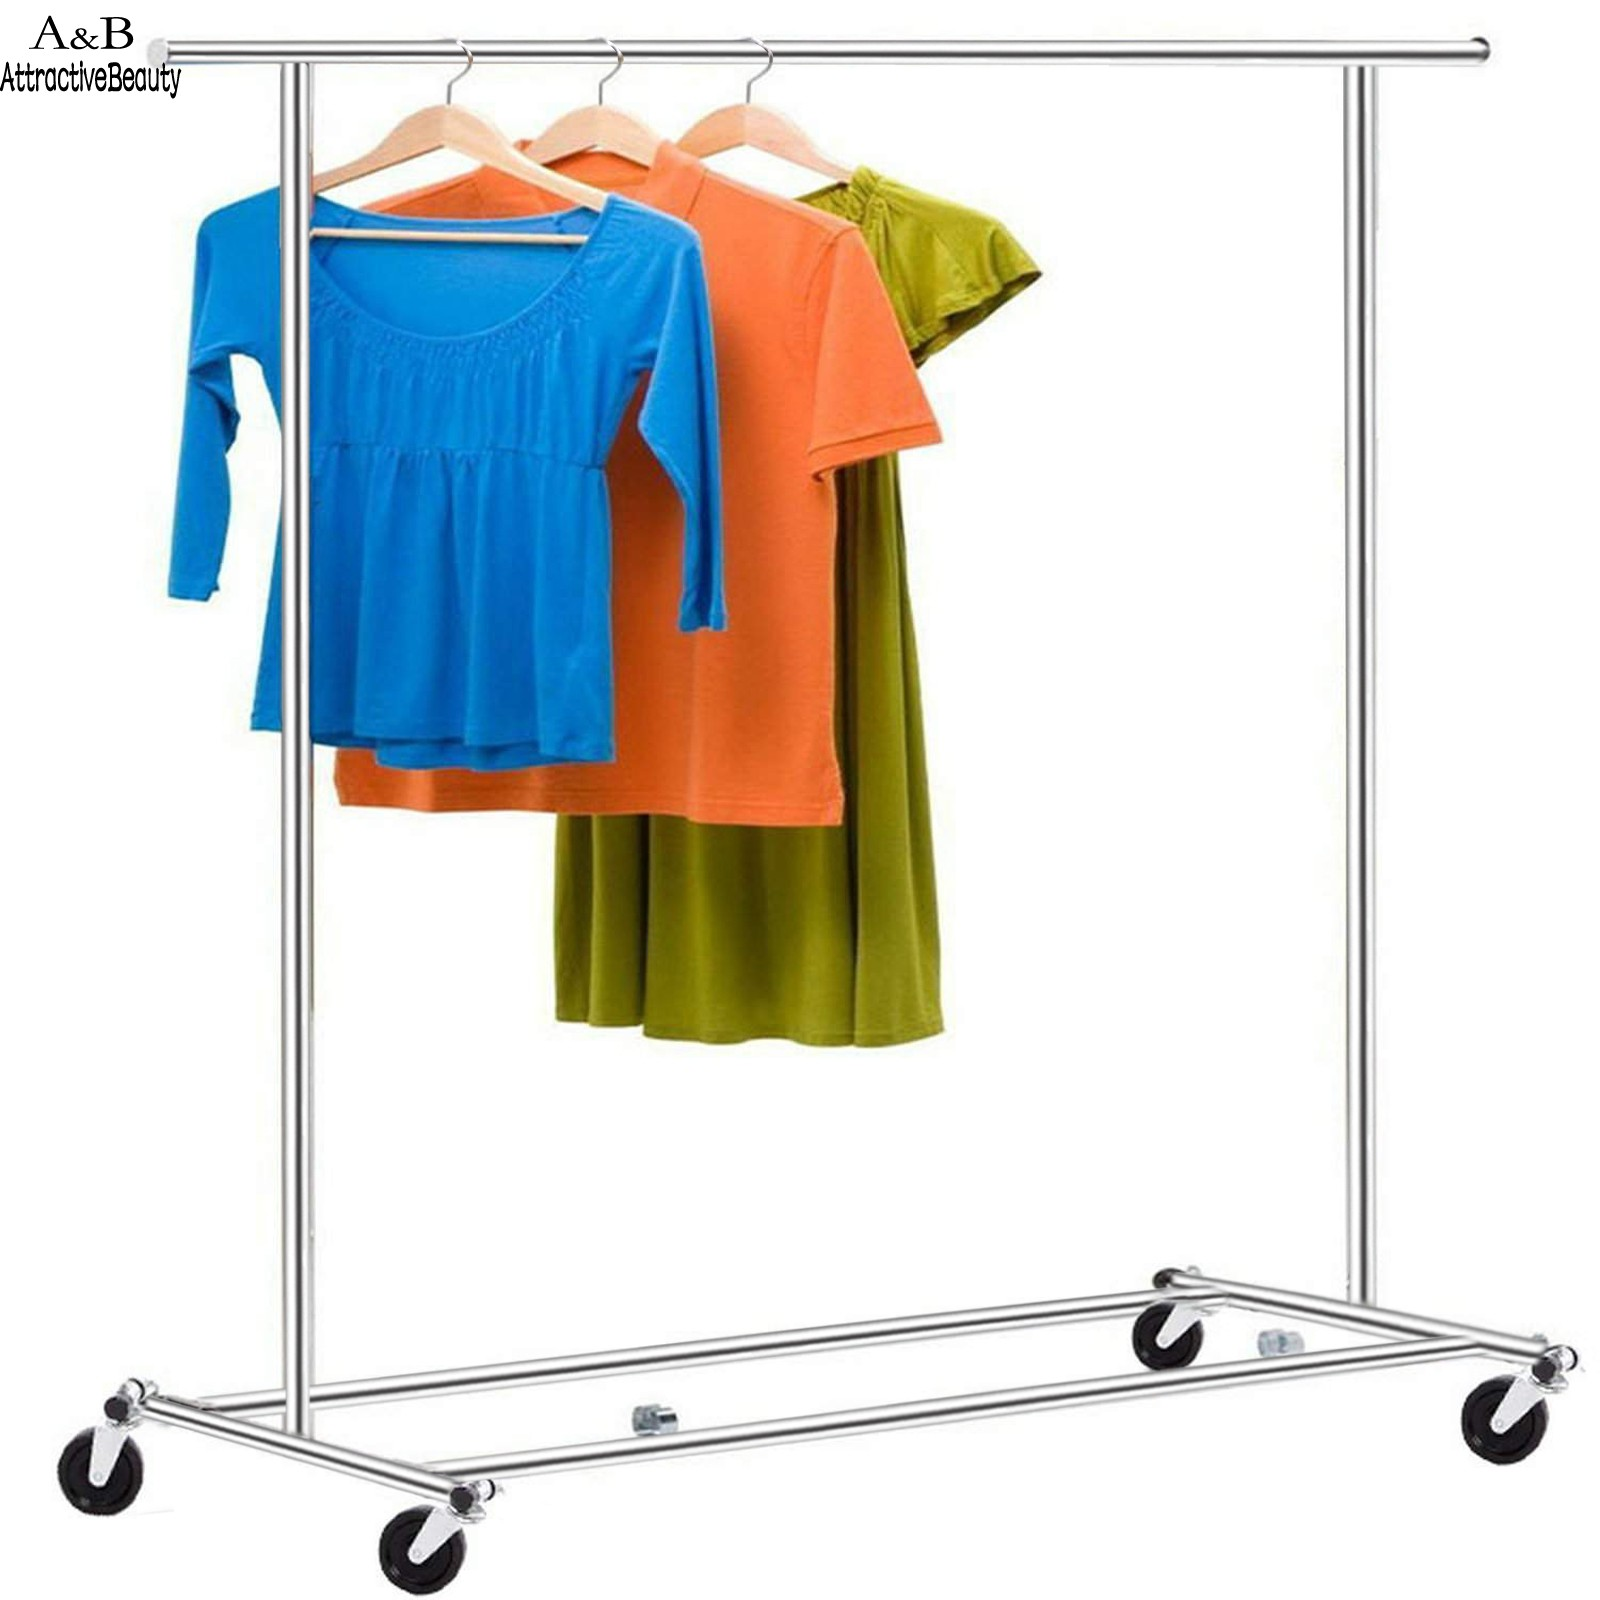 Buy Portable Clothing Rack And Get Free Shipping On AliExpress